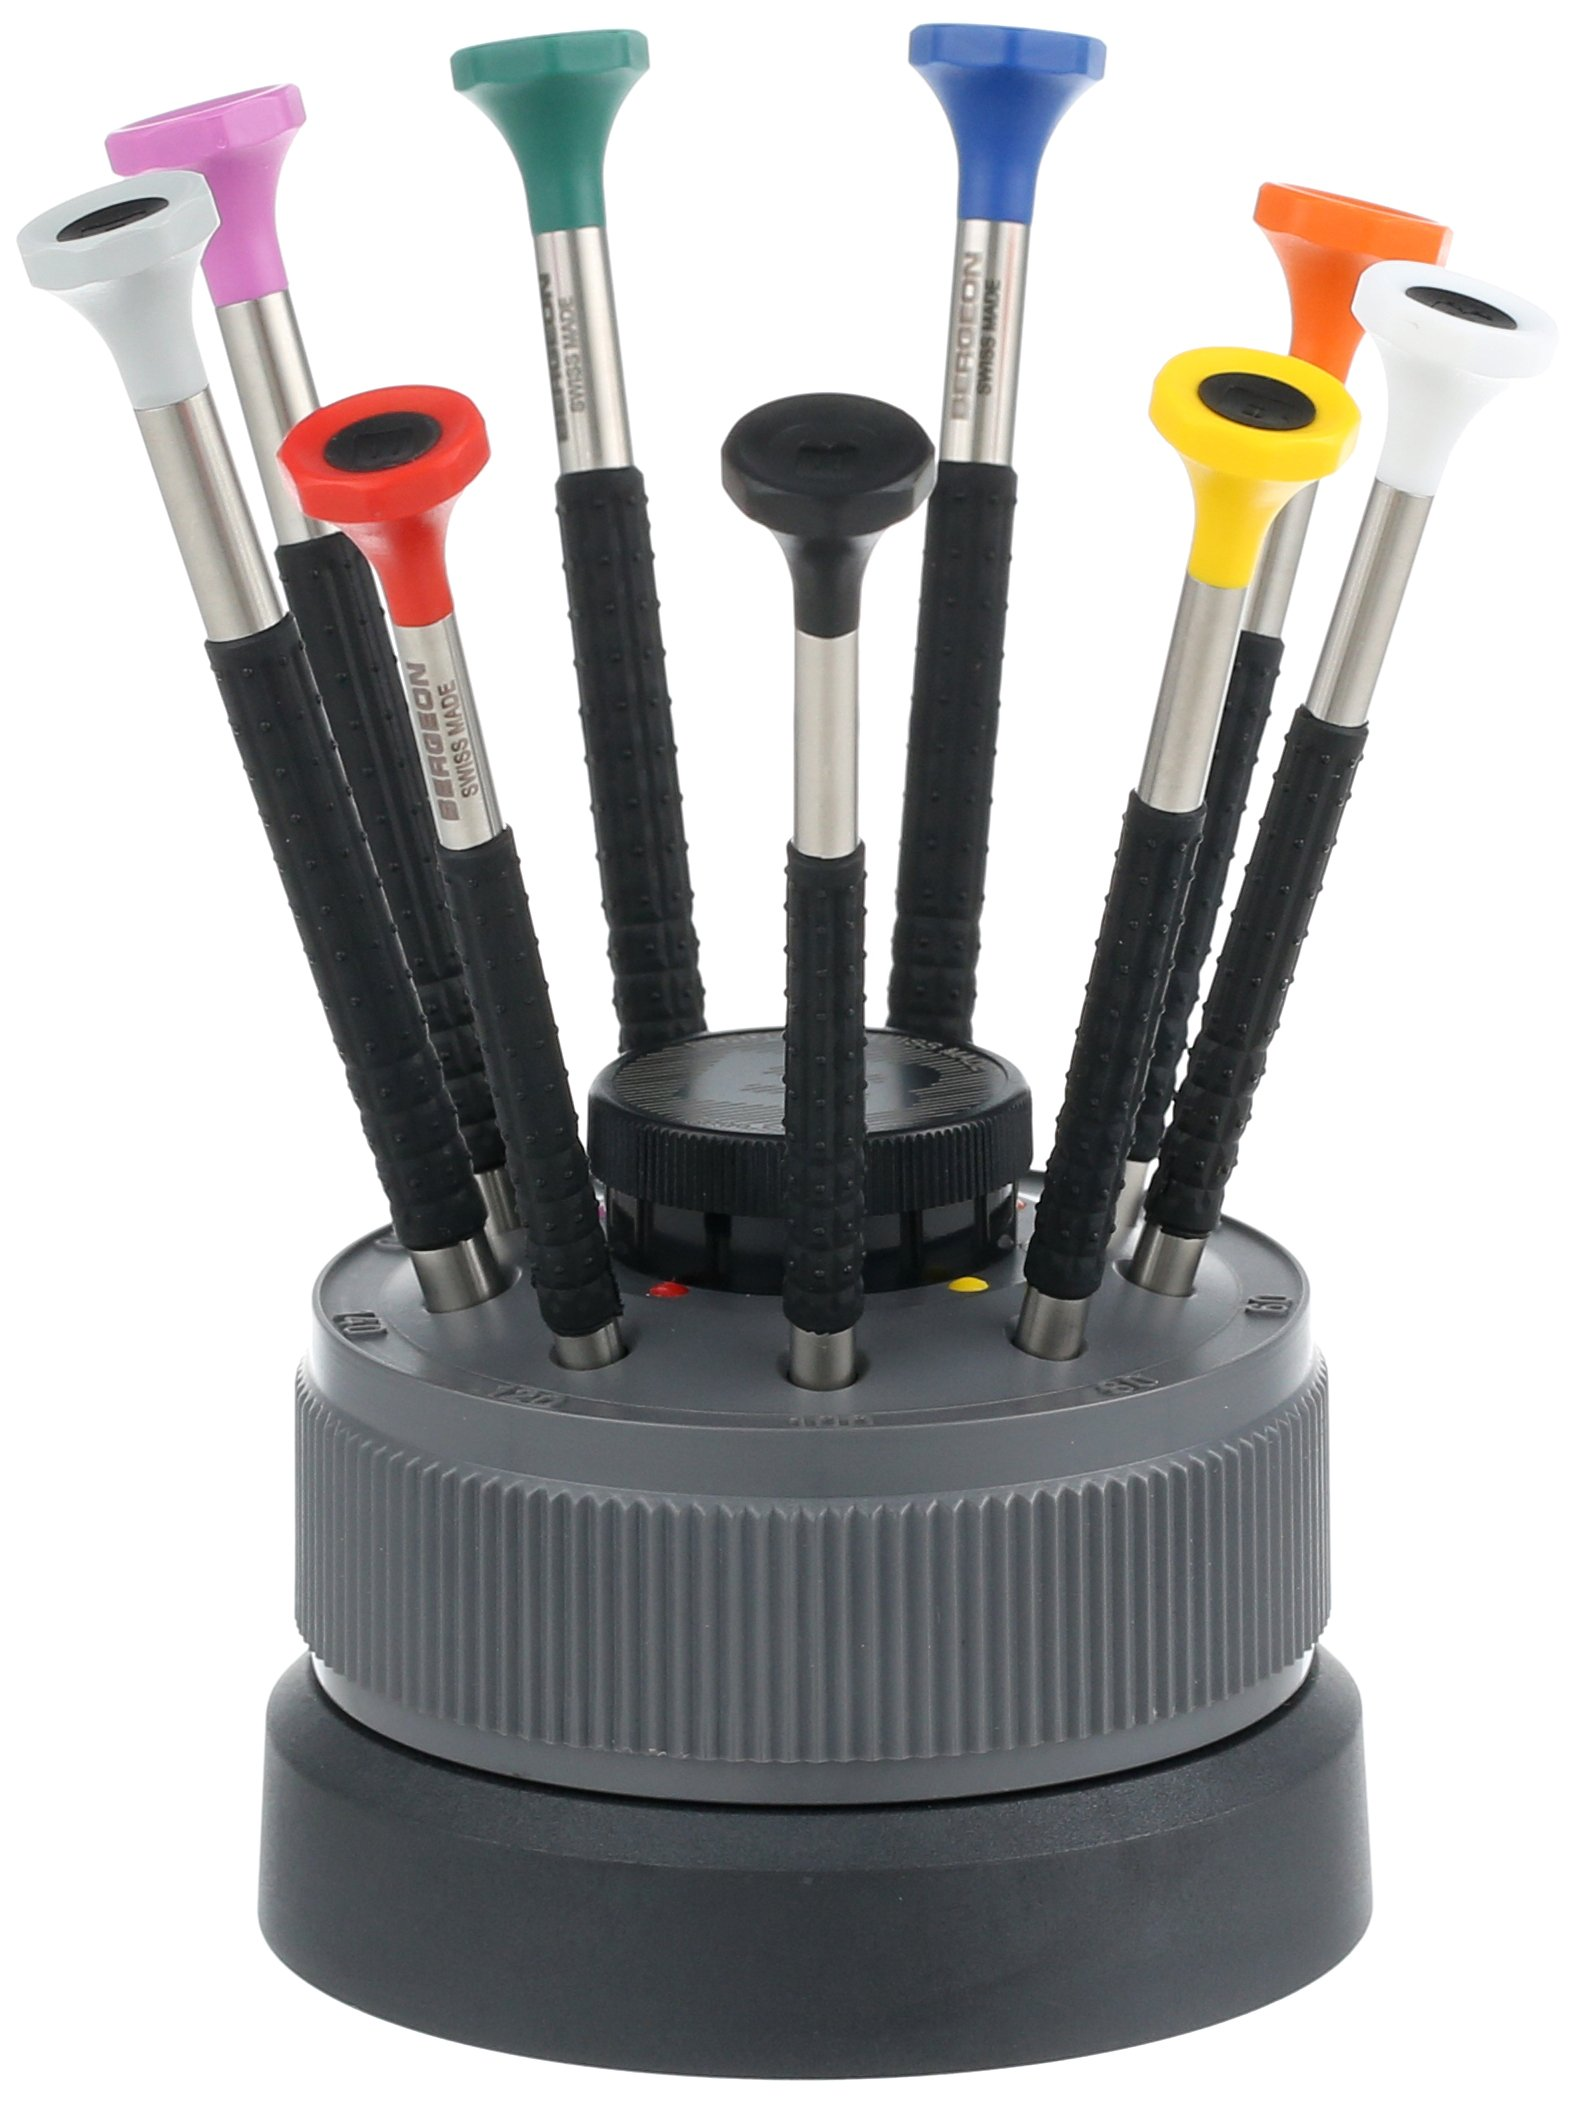 Bergeon 55-603 6899-S09 Rotating Stand with 9 Ergonomic Screwdrivers with Spare Blades Watch Repair Kit by Bergeon (Image #1)